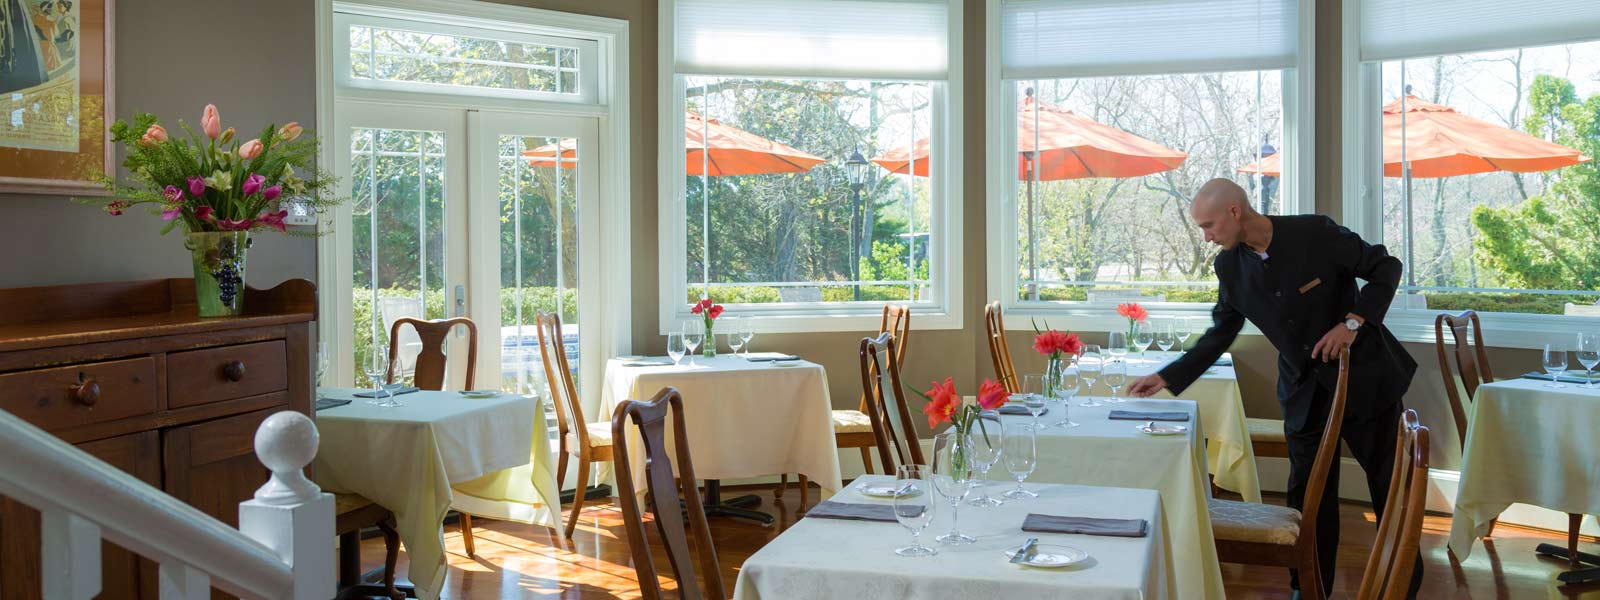 Virginia Hospitality Jobs At Bed And Breakfasts